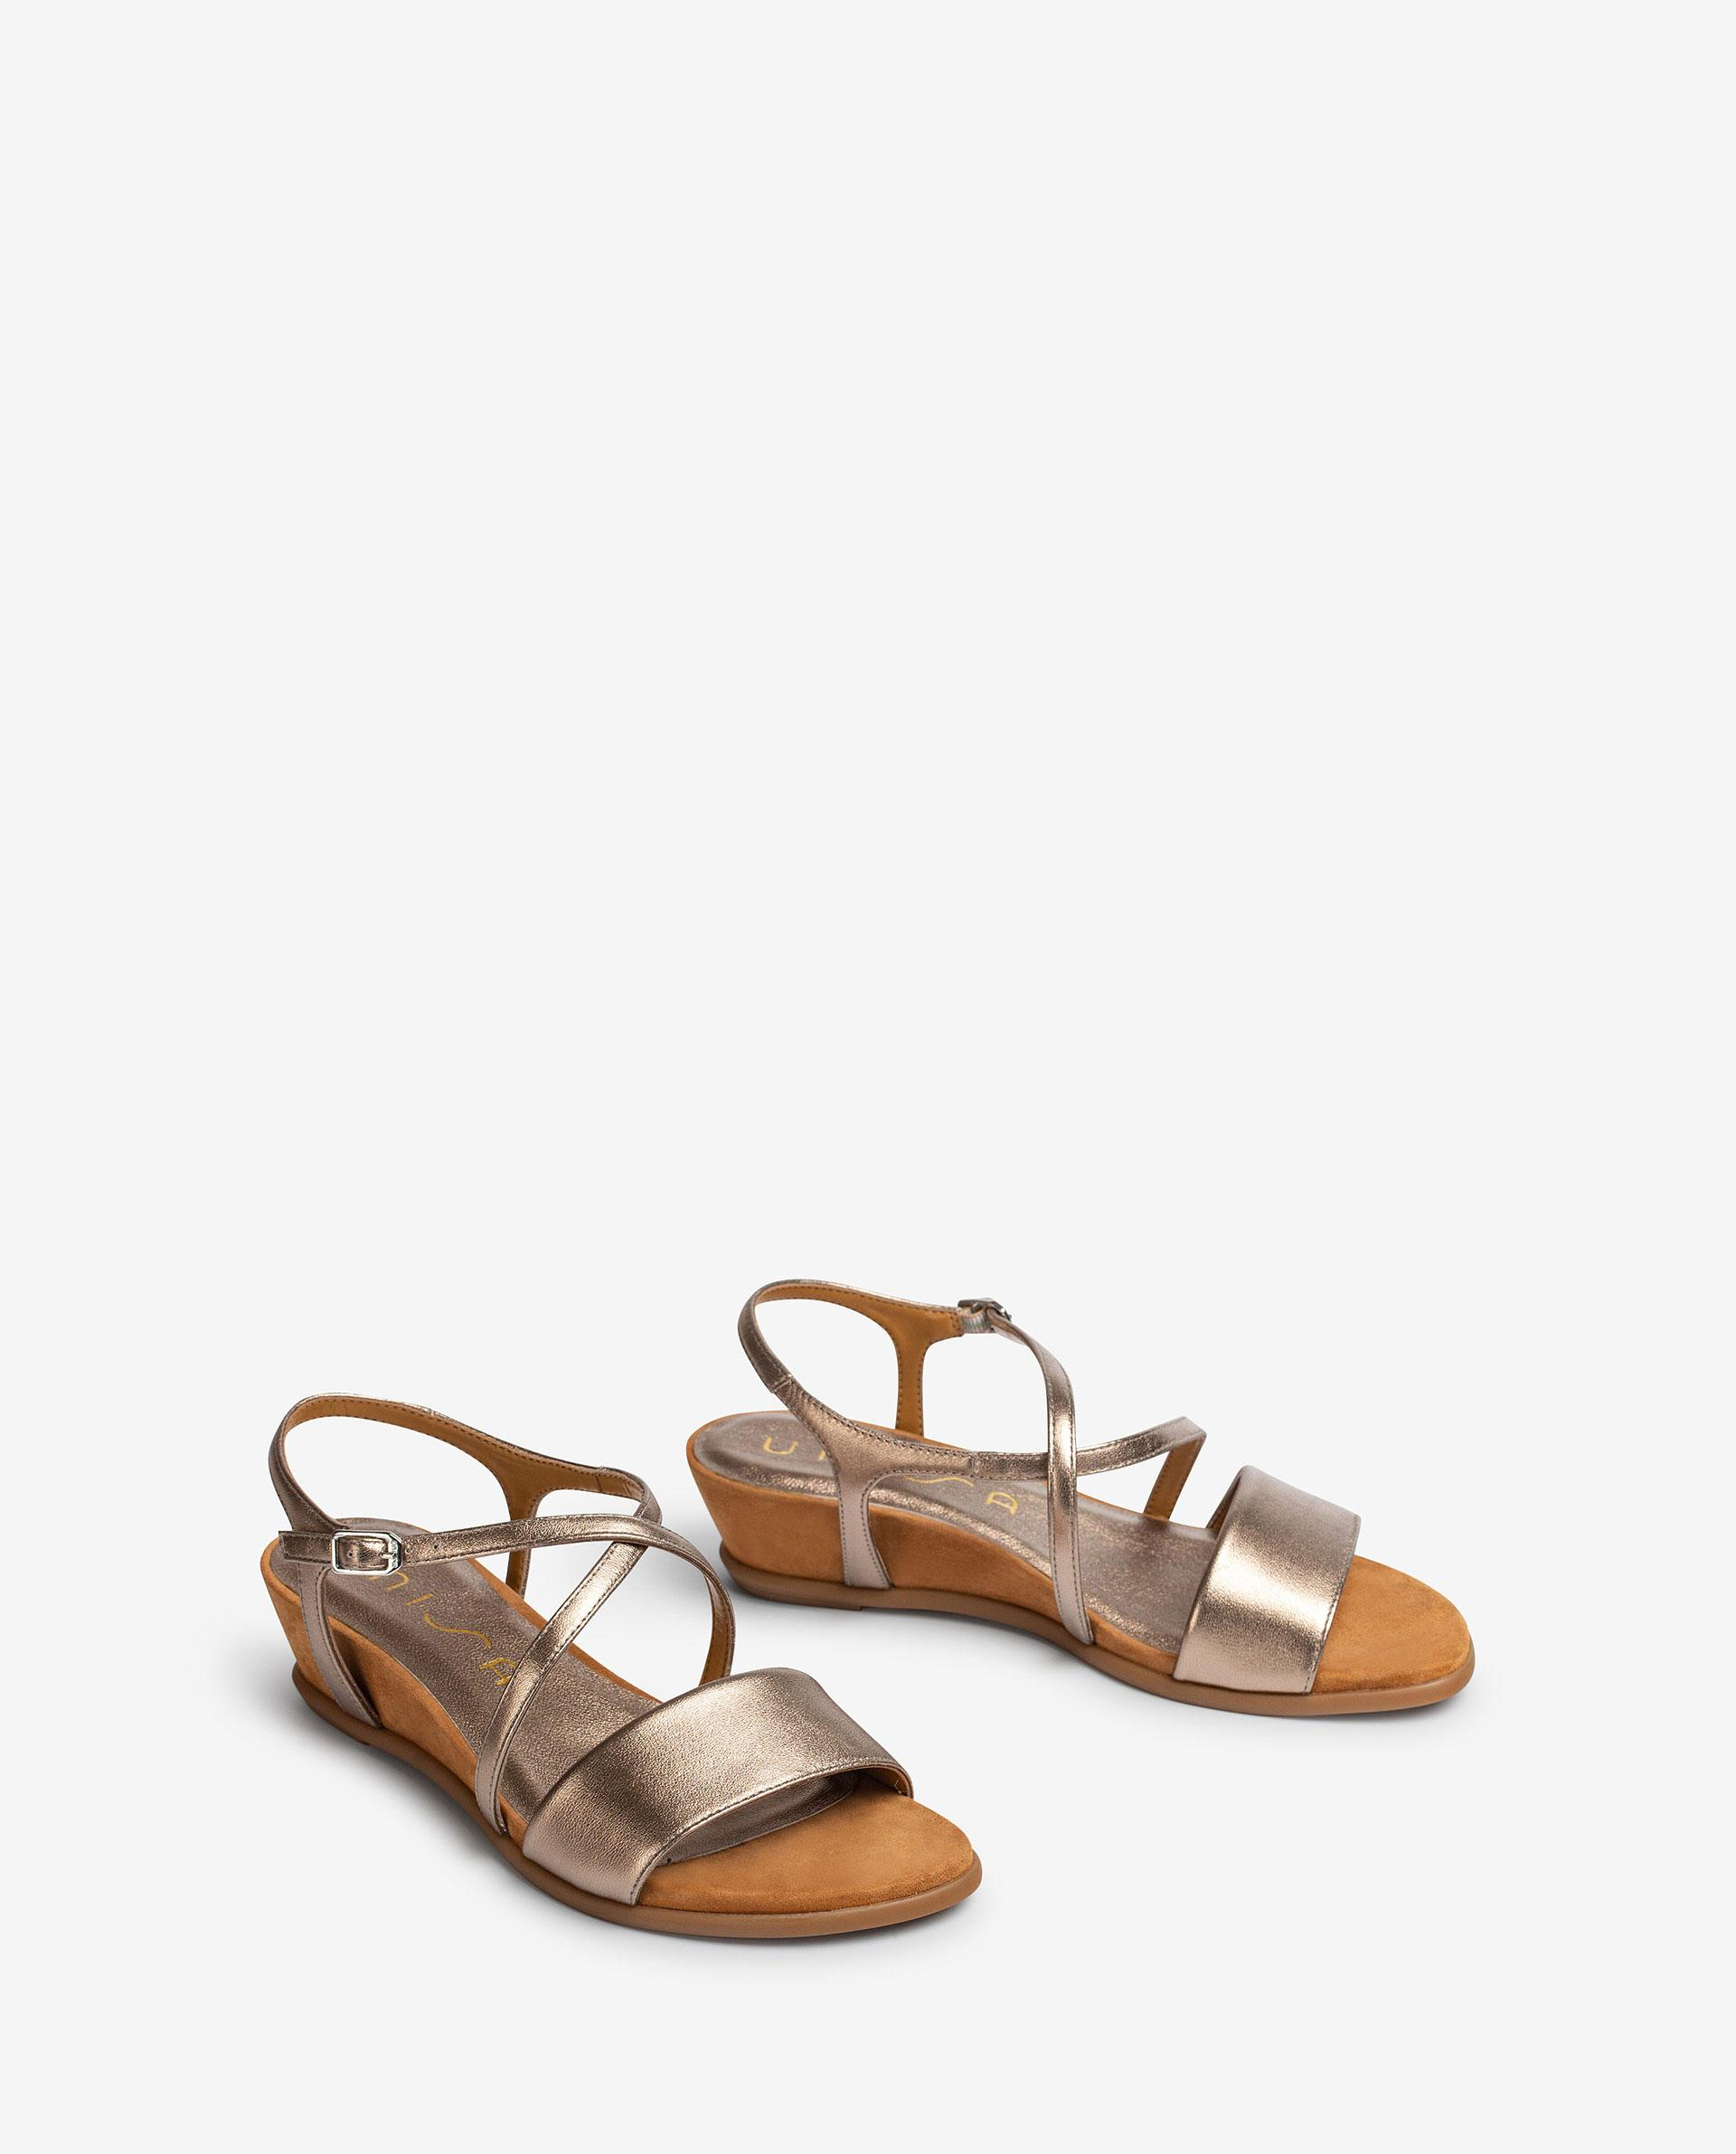 UNISA Metal effect leather sandals with instep strap BAKIOSIN_LMT 2